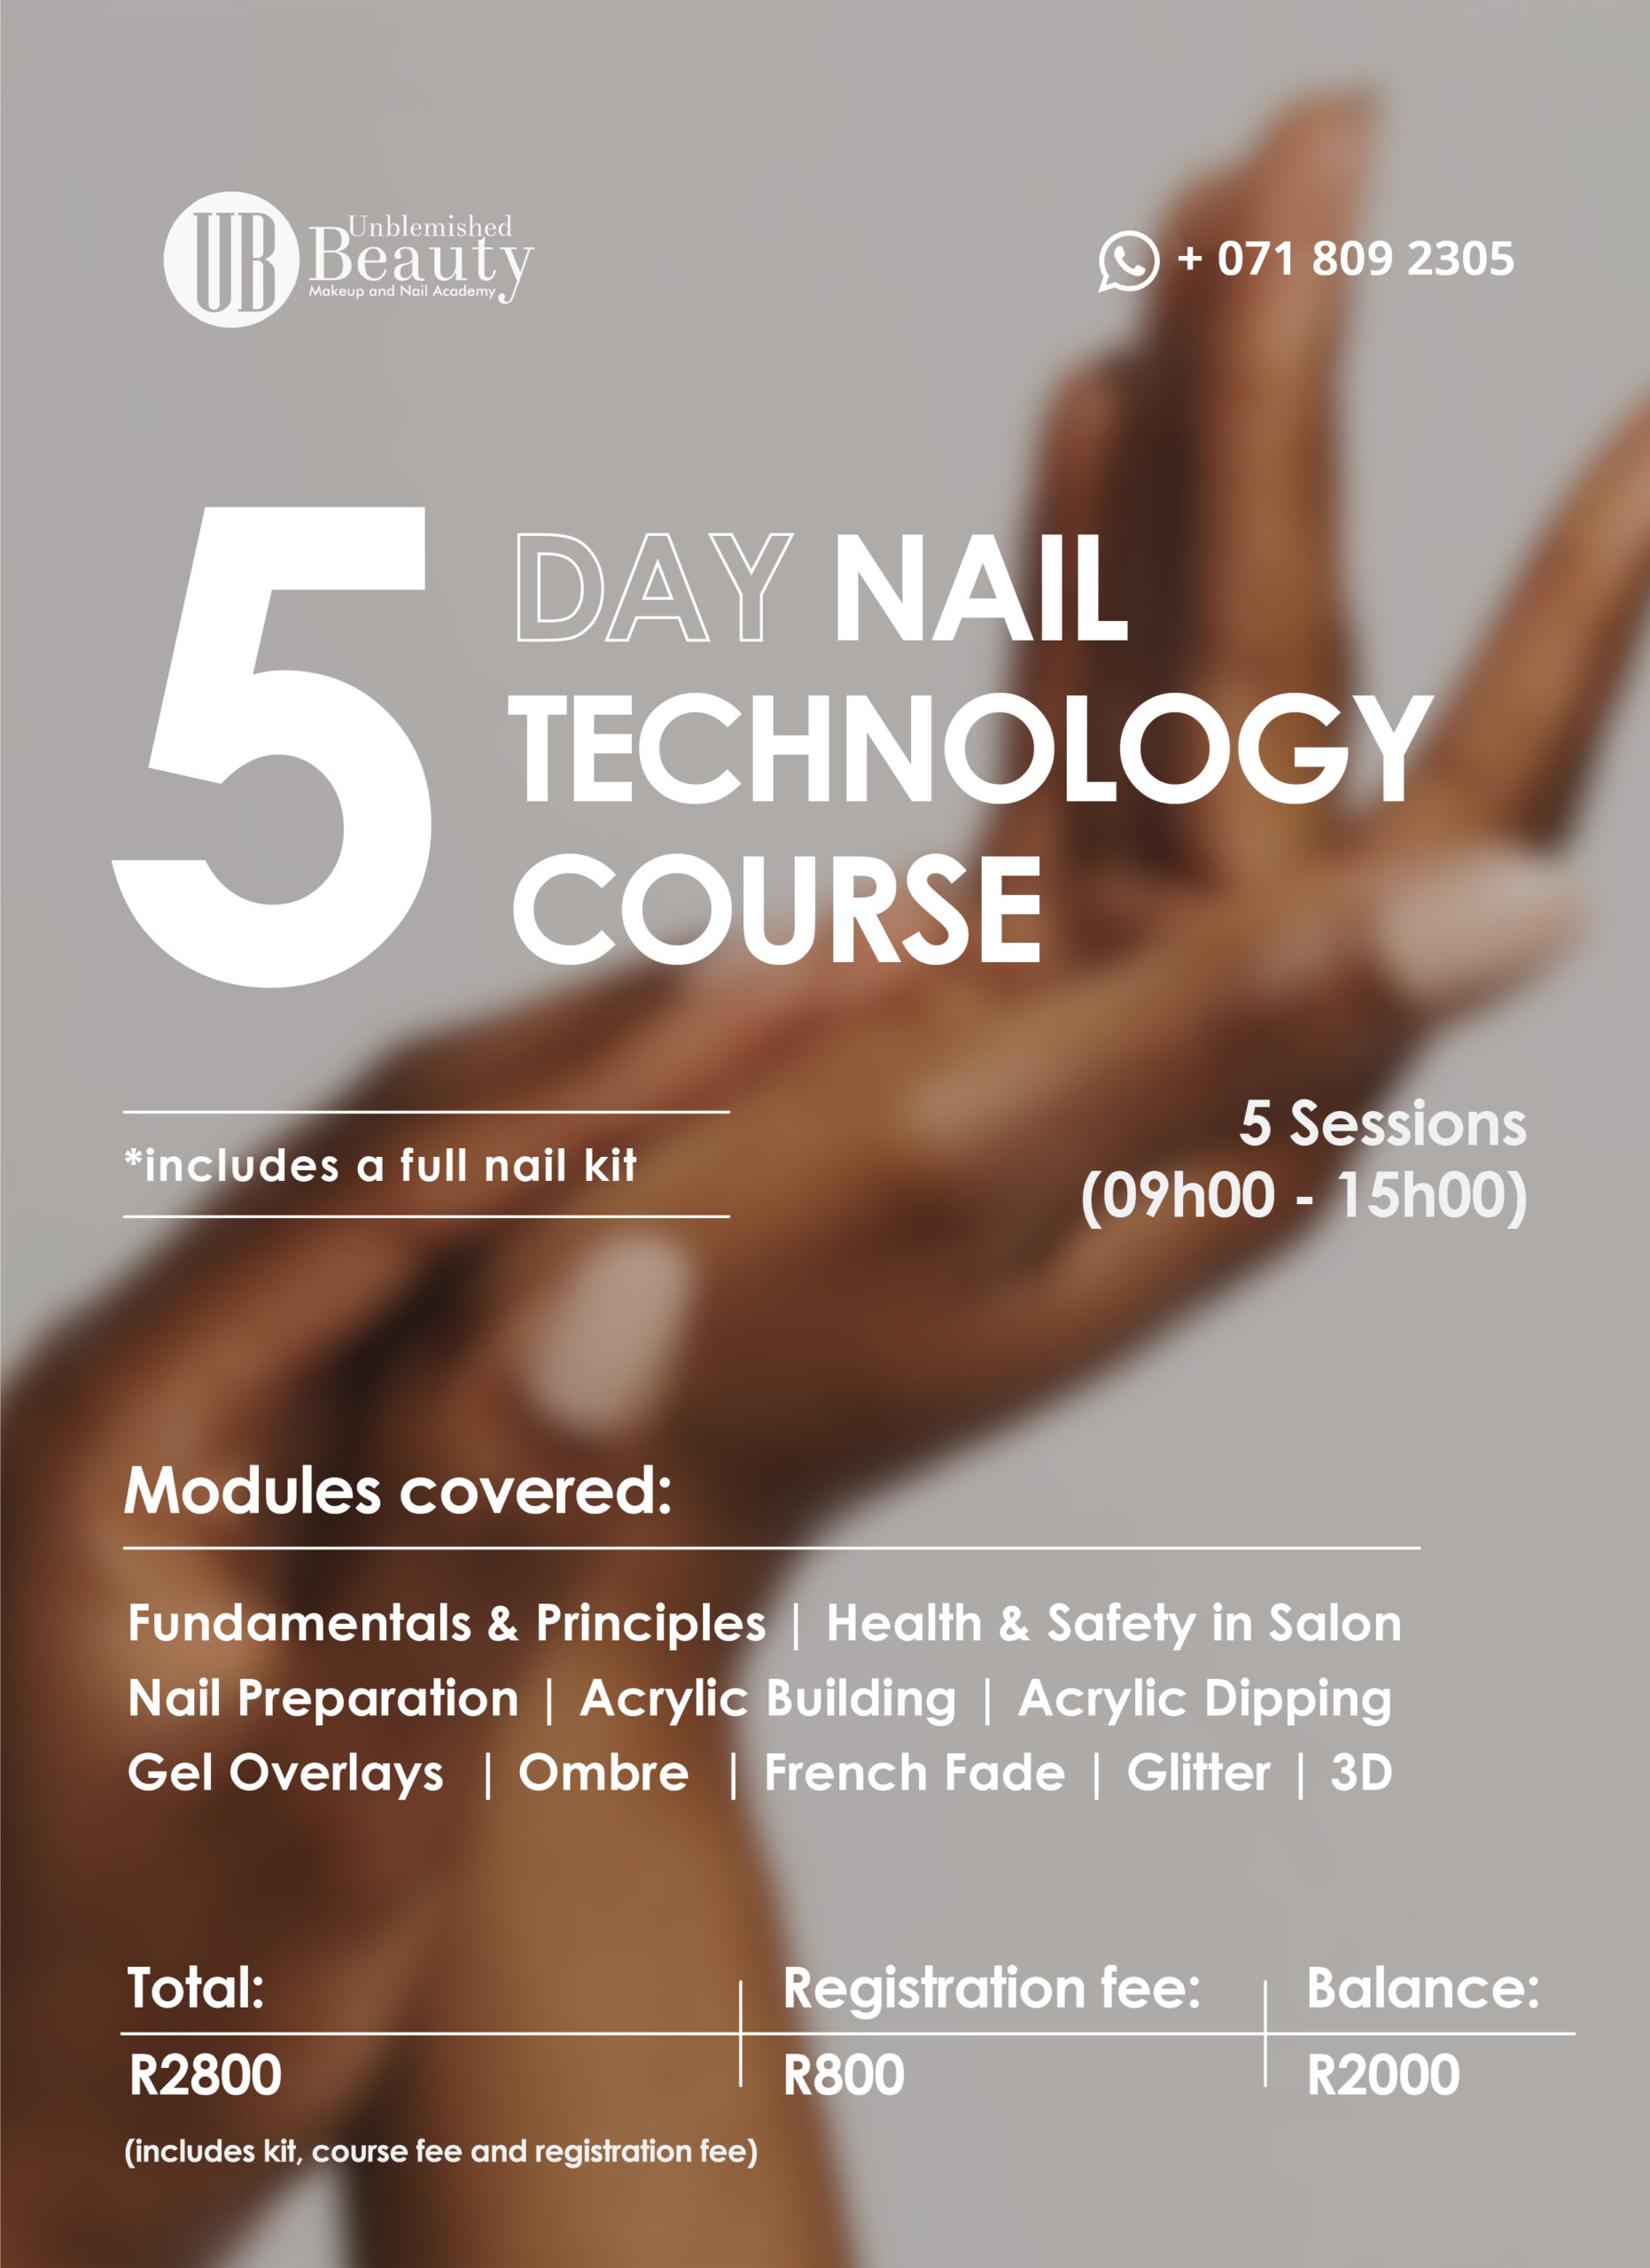 Unblemished Beauty Course Posters- Nail Tech Course Info